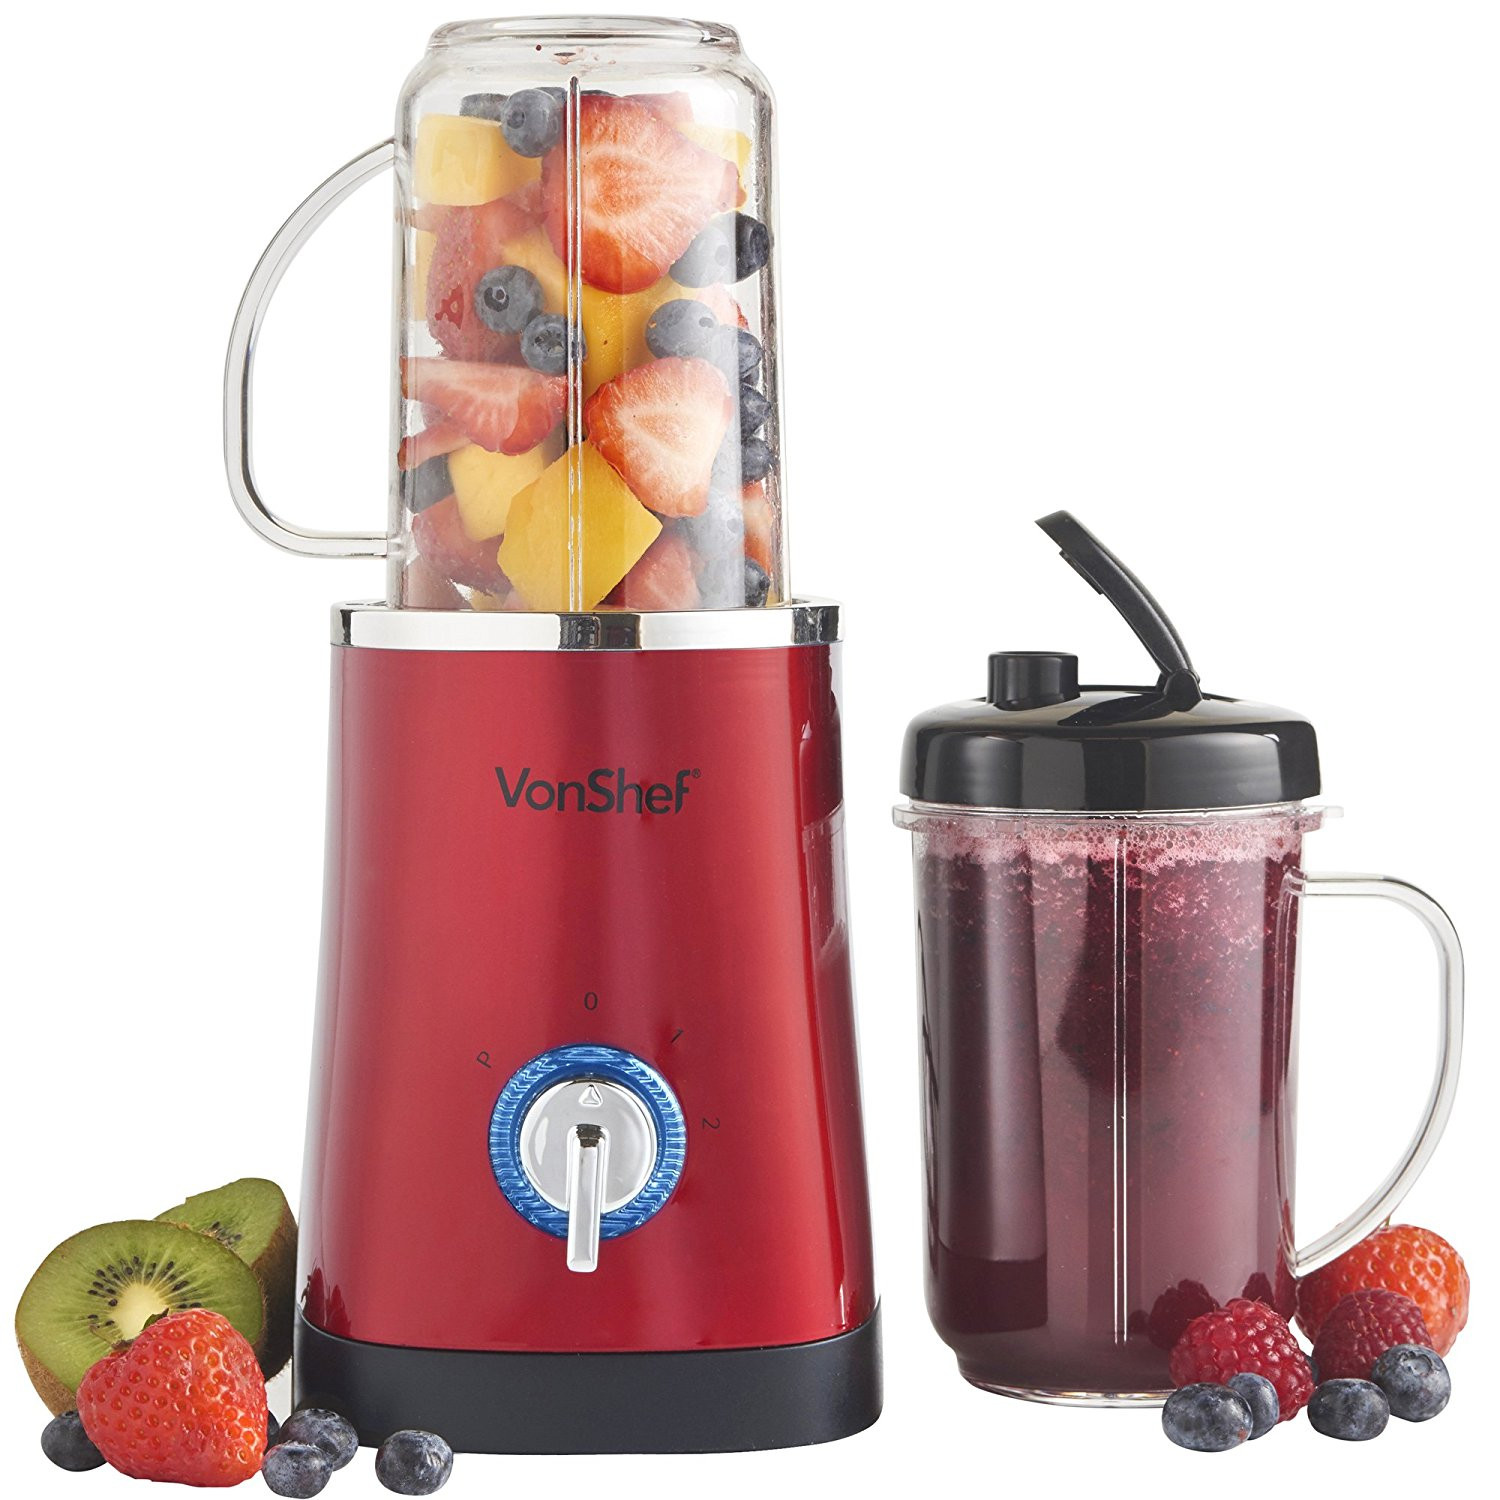 Blender For Smoothies  Vonshef Blender Juicer Grinder & Smoothie Maker for 220